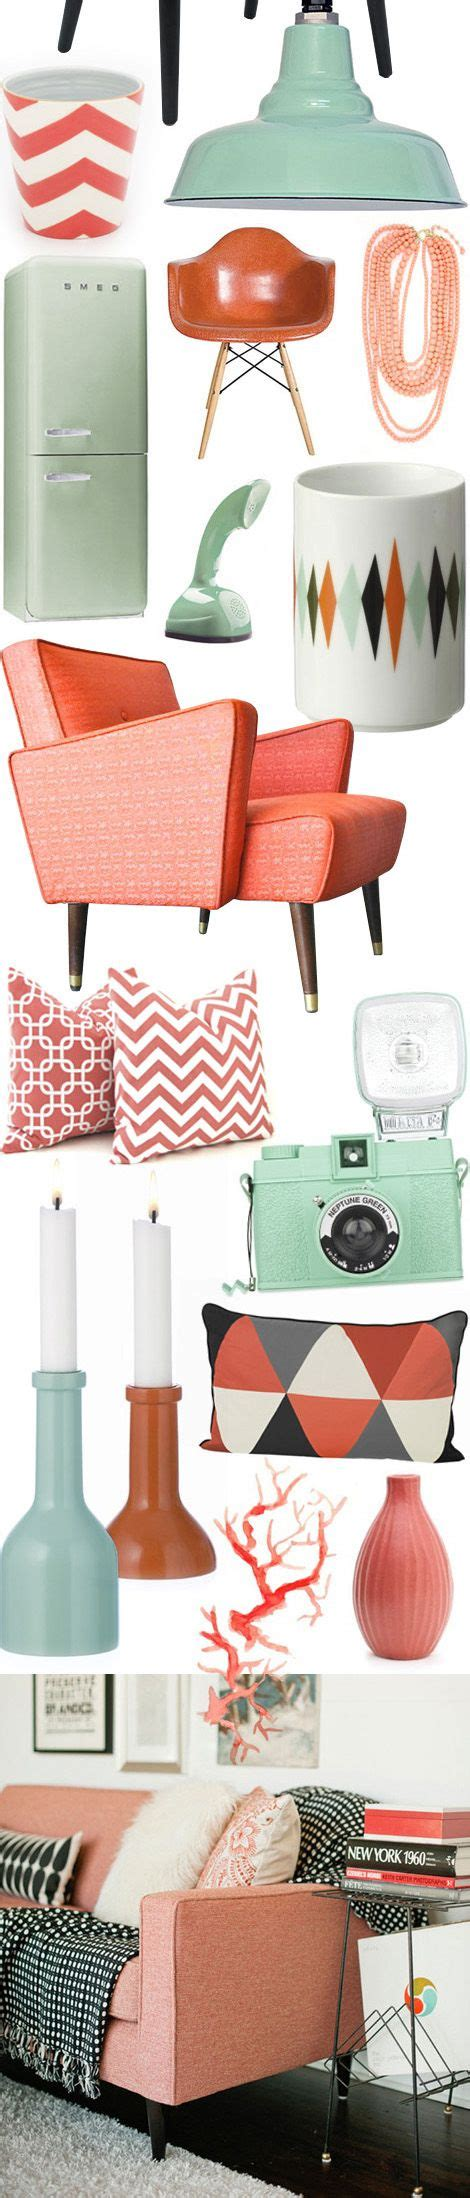 Mint And Coral Home Decor Vintage Inspired Living Room Ideas Color Of The Month On